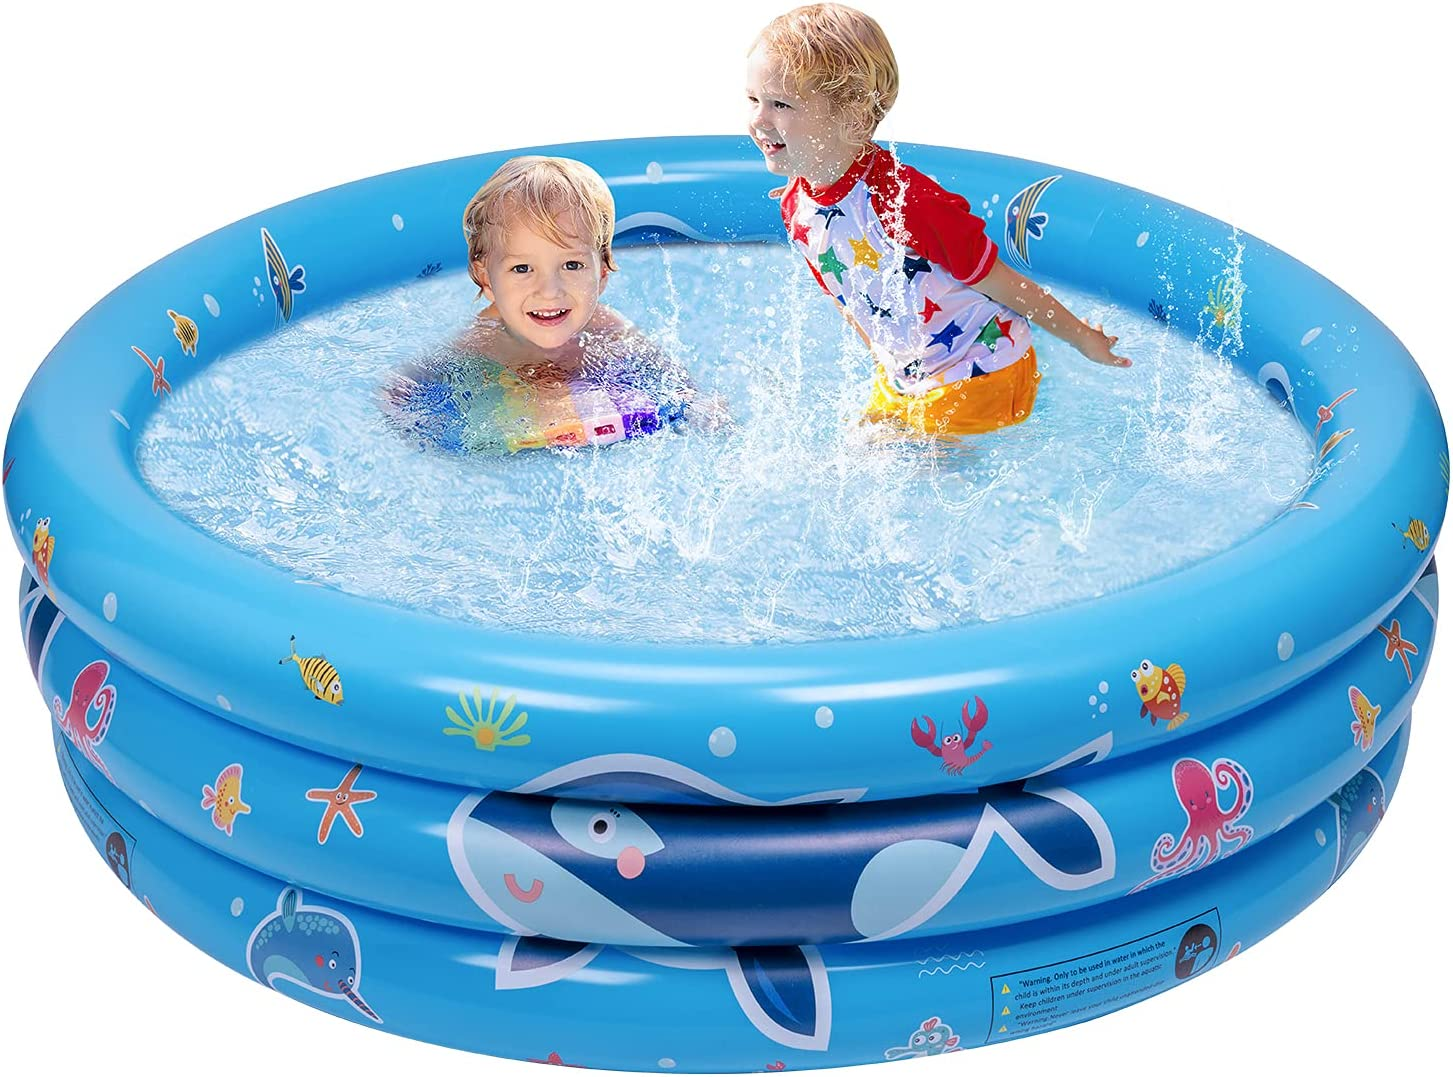 Balnore Paddling Pool 3 Ring Inflatable Paddling Pools For Kids Paddle Pool Small Swimming Pools For Gardens Outdoor Backyard 47x17x7 Inches Amazon Co Uk Toys Games